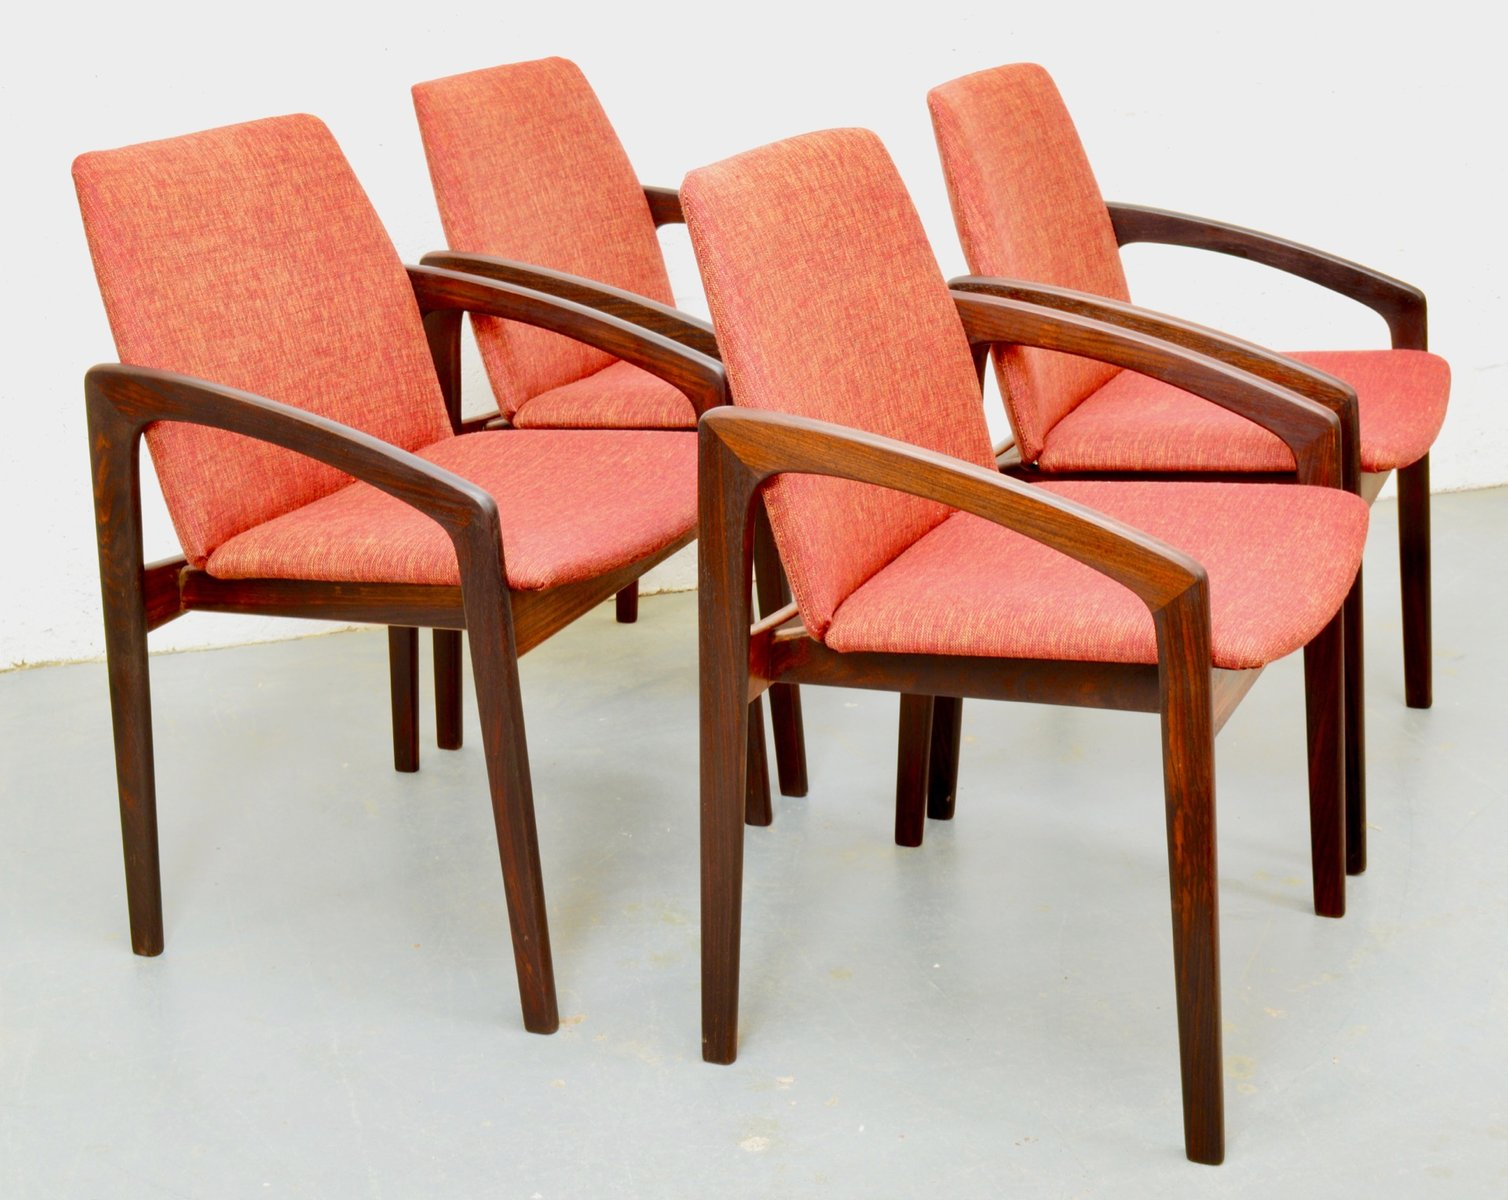 Mid Century Rosewood Danish Chairs By Kai Kristiansen For Korup Set Of 4 For